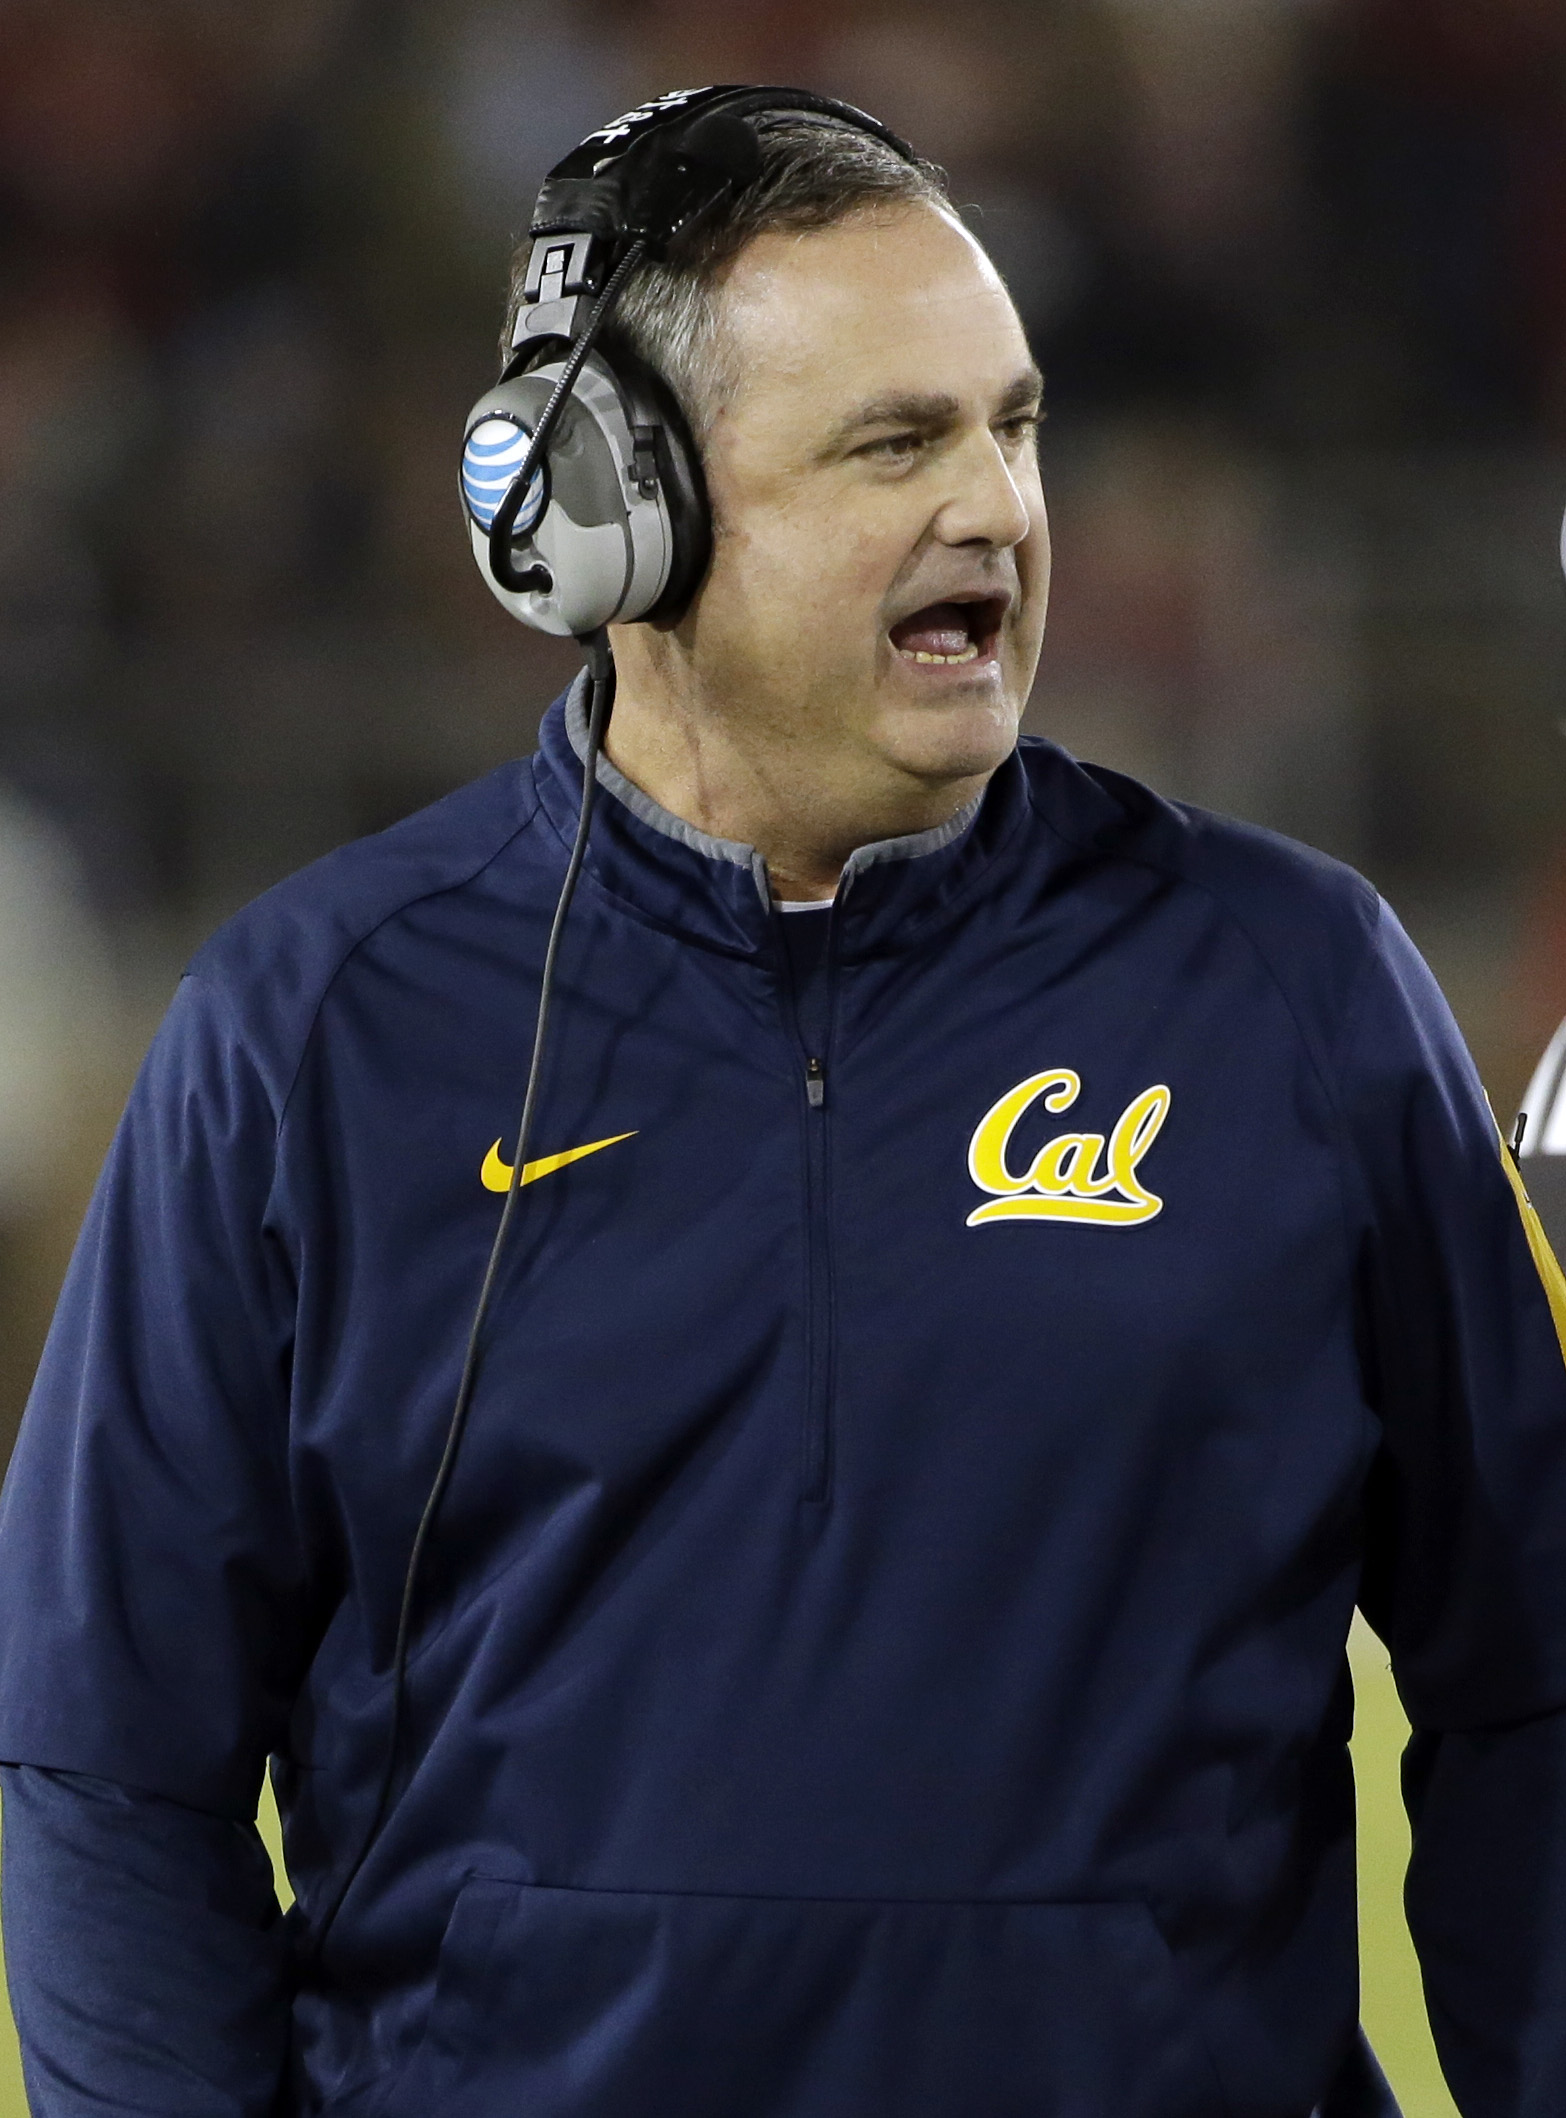 California head coach Sonny Dykes yells out instructions during the first half of an NCAA college football game against Stanford  Saturday, Nov. 21, 2015, in Stanford, Calif. (AP Photo/Marcio Jose Sanchez)